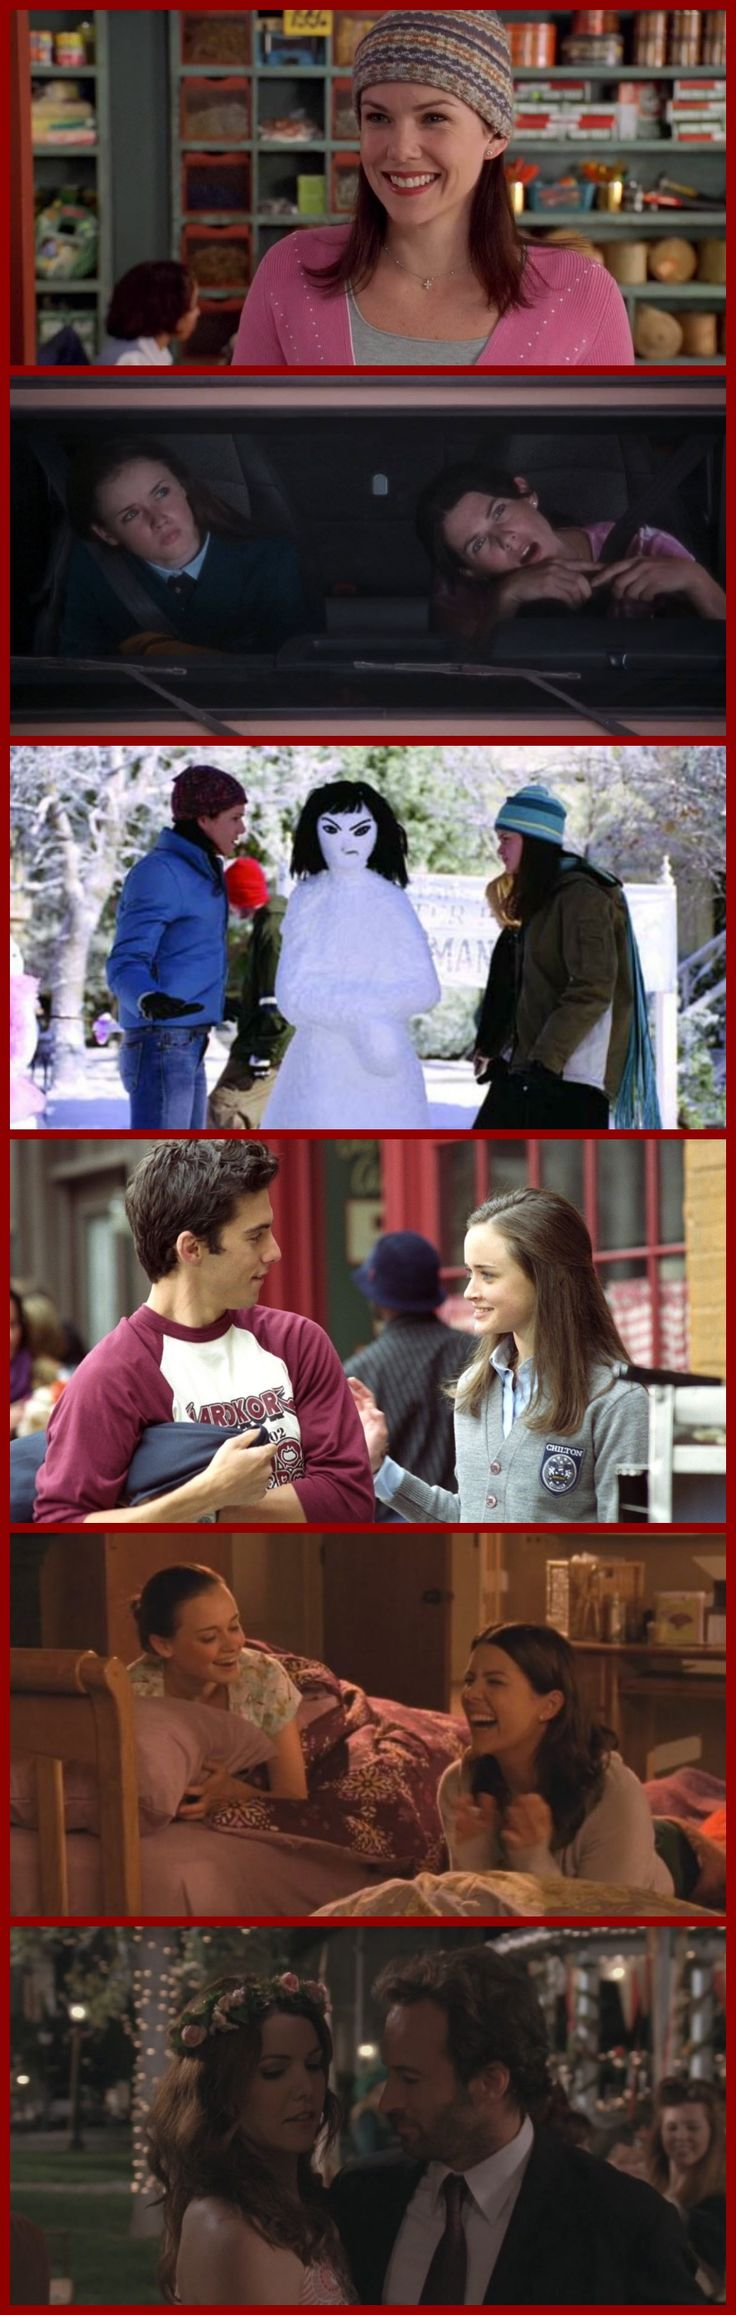 The 30 Best Episodes of Gilmore Girls: http://www.telltaletv.com/2016/10/30-best-episodes-of-gilmore-girls/